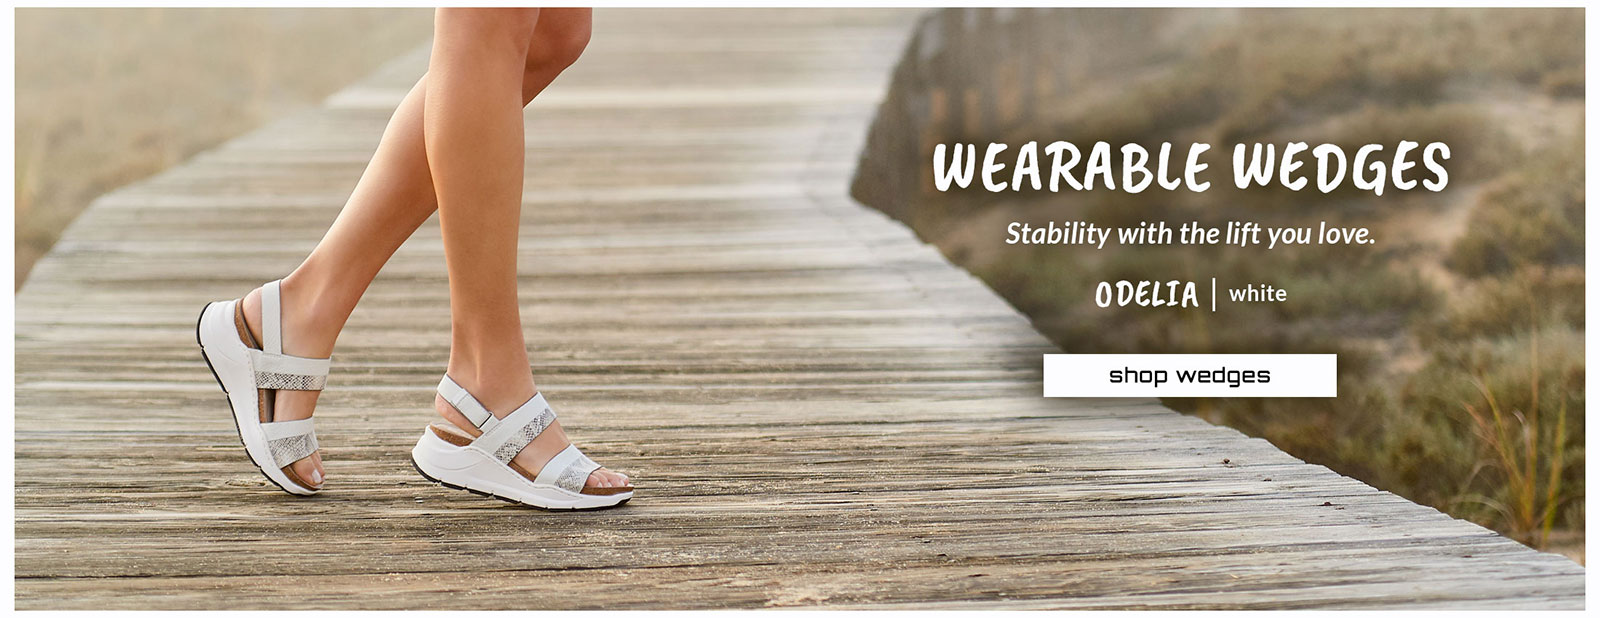 Wearable wedges. Stability with the lift you love. Featured style: Odelia sandal in white. shop wedges.